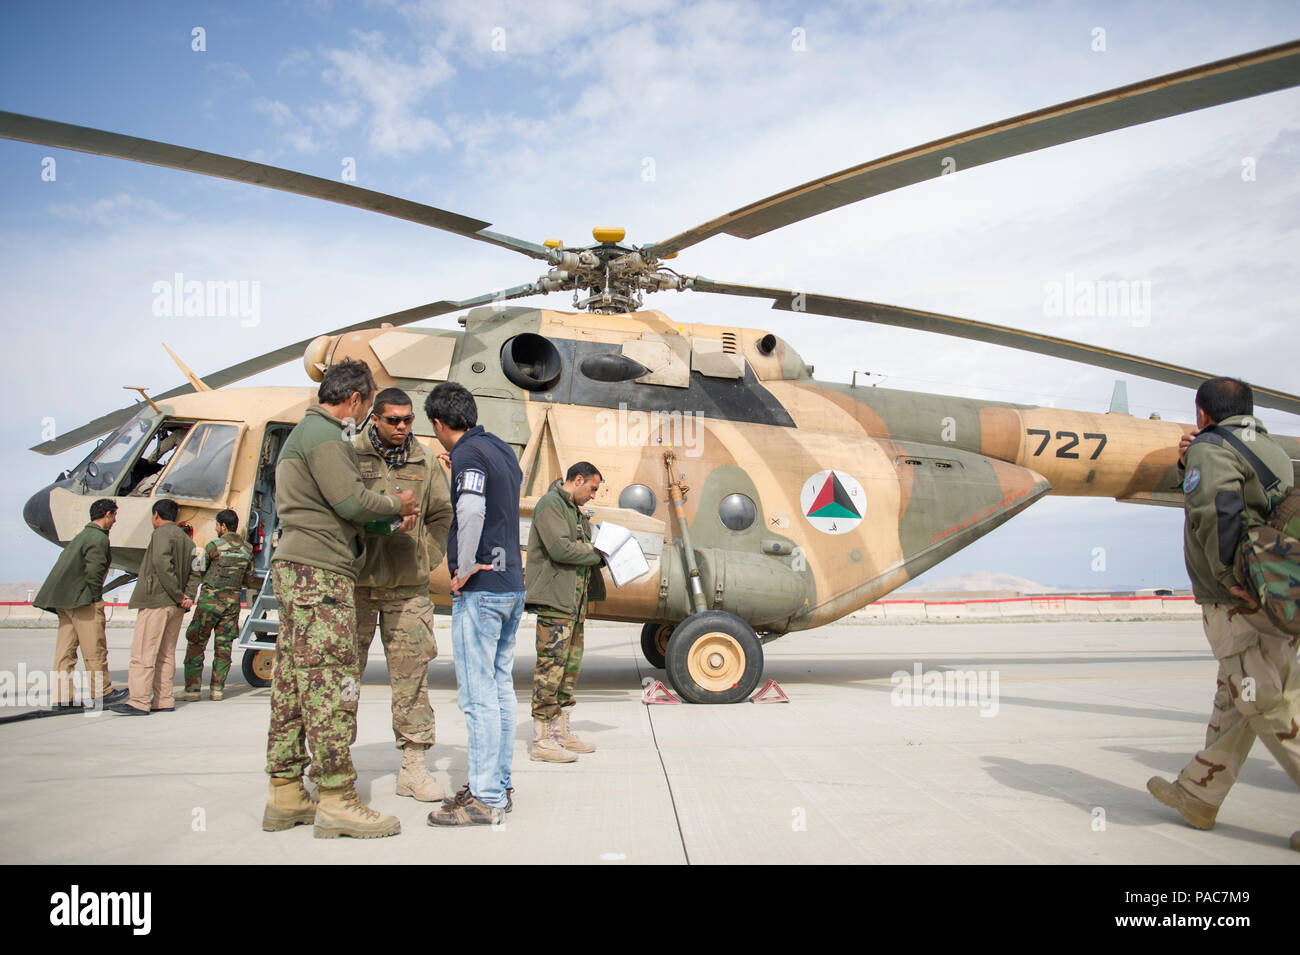 Tech. Sgt. Erik Edwards, Train Advise Assist Command - Air Mi-17 flightline advisor, talks with an Afghan Air Force member with the help of an interpreter near on the ramp at Kandahar Airfield, Afghanistan, March 2, 2016. As a functional command, TAAC-Air assists our Afghan partners to develop a professional, capable and sustainable force. (U.S. Air Force photo/Tech. Sgt. Robert Cloys) - Stock Image